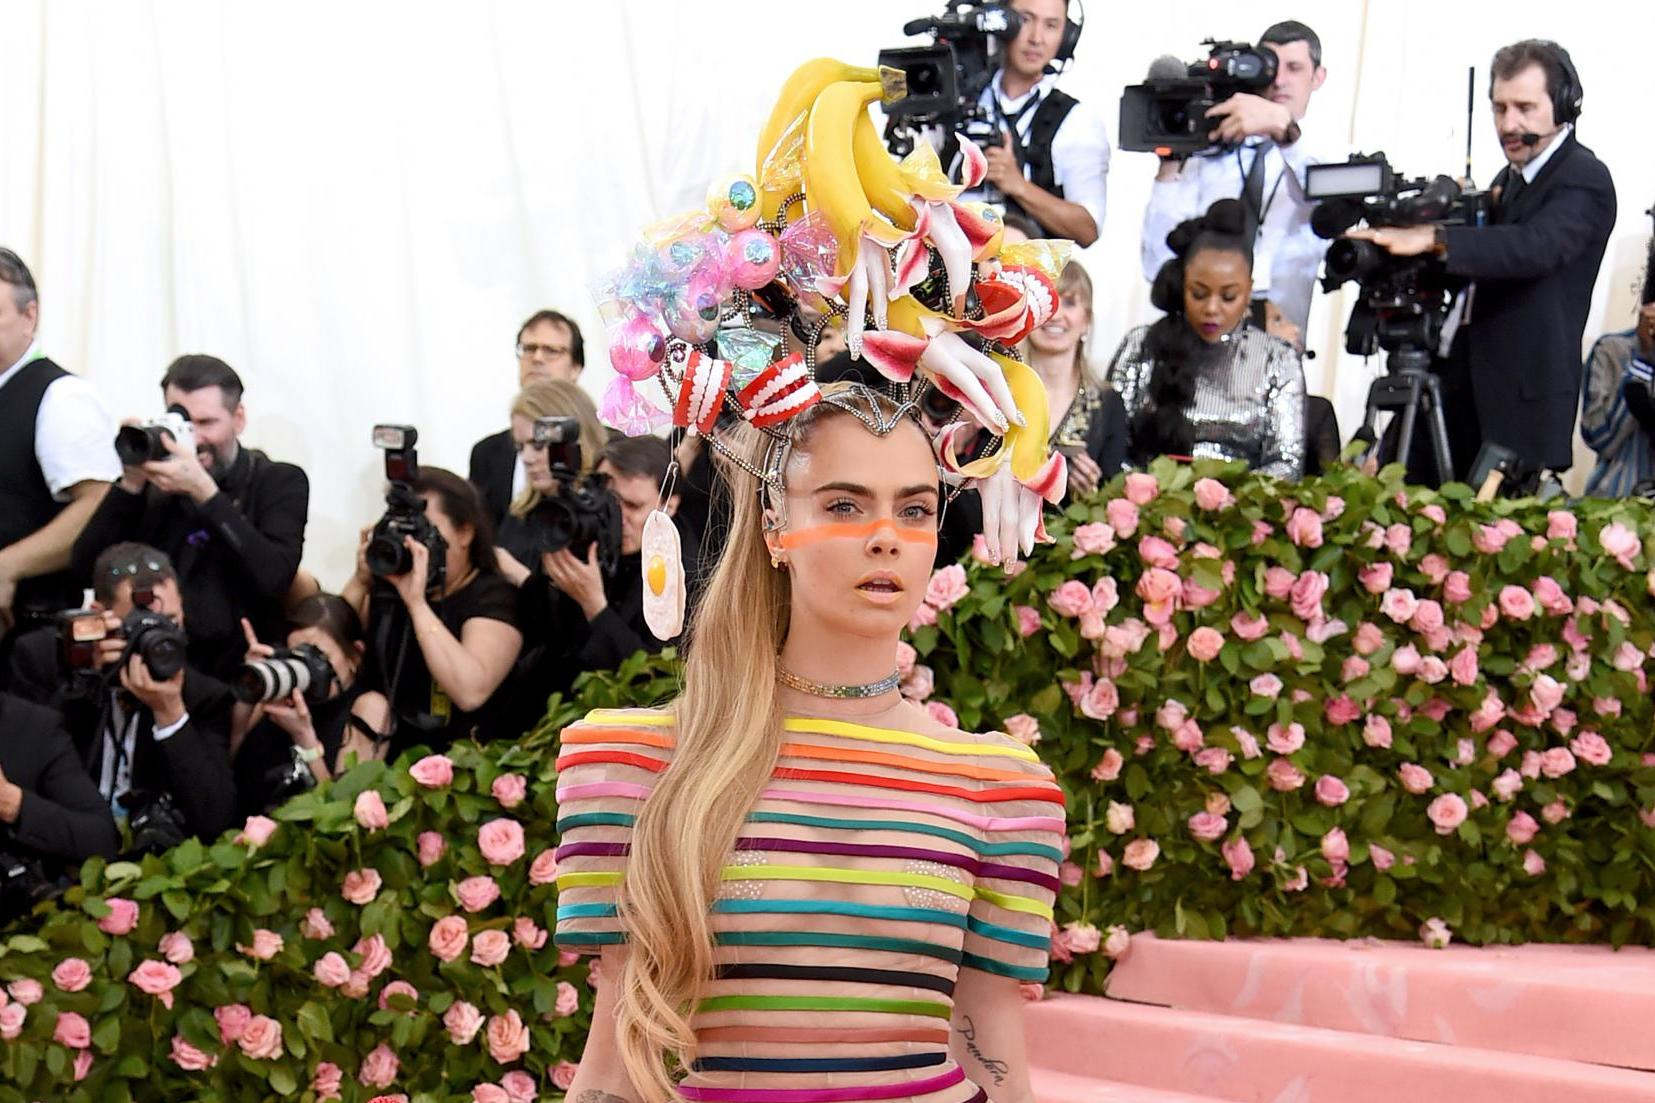 What's Trending Now Everything You Need To Know About The MET Gala 8 trending now What's Trending Now: Everything You Need To Know About The MET Gala! Whats Trending Now Everything You Need To Know About The MET Gala 8